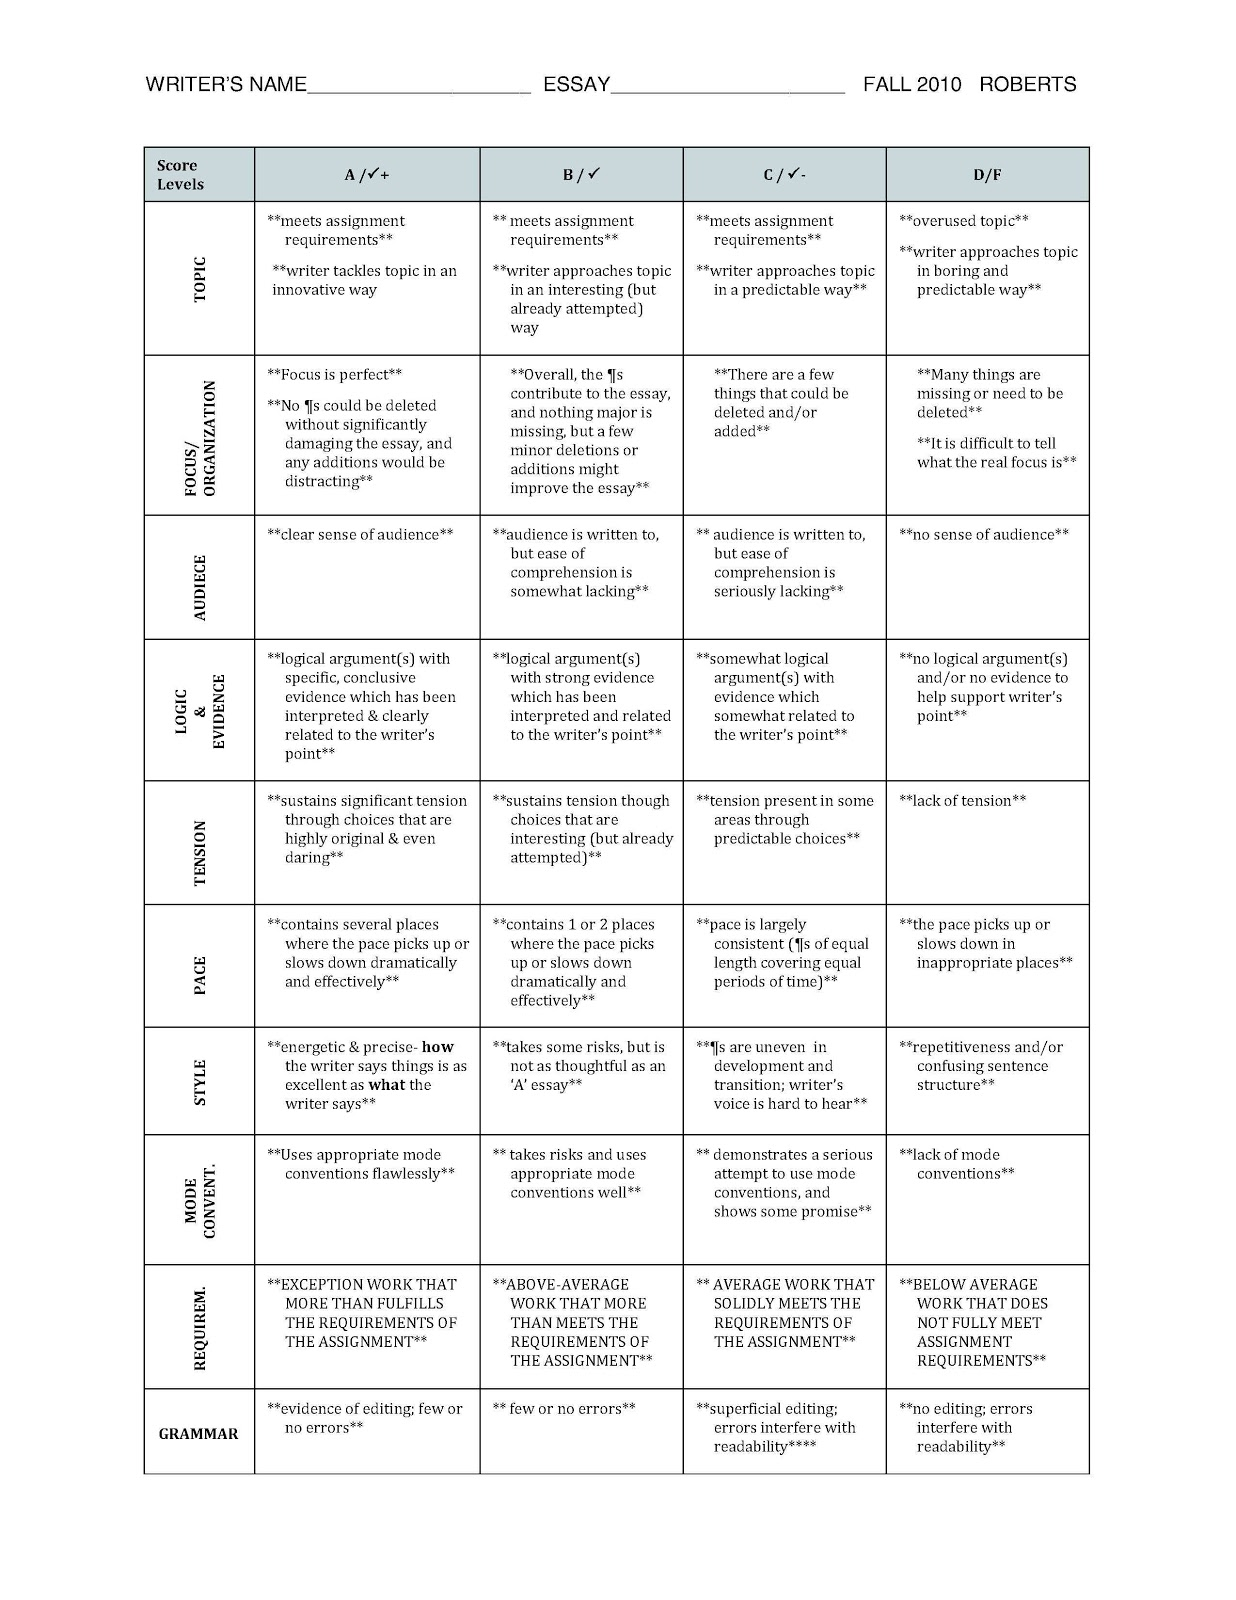 rubric for grading essay questions